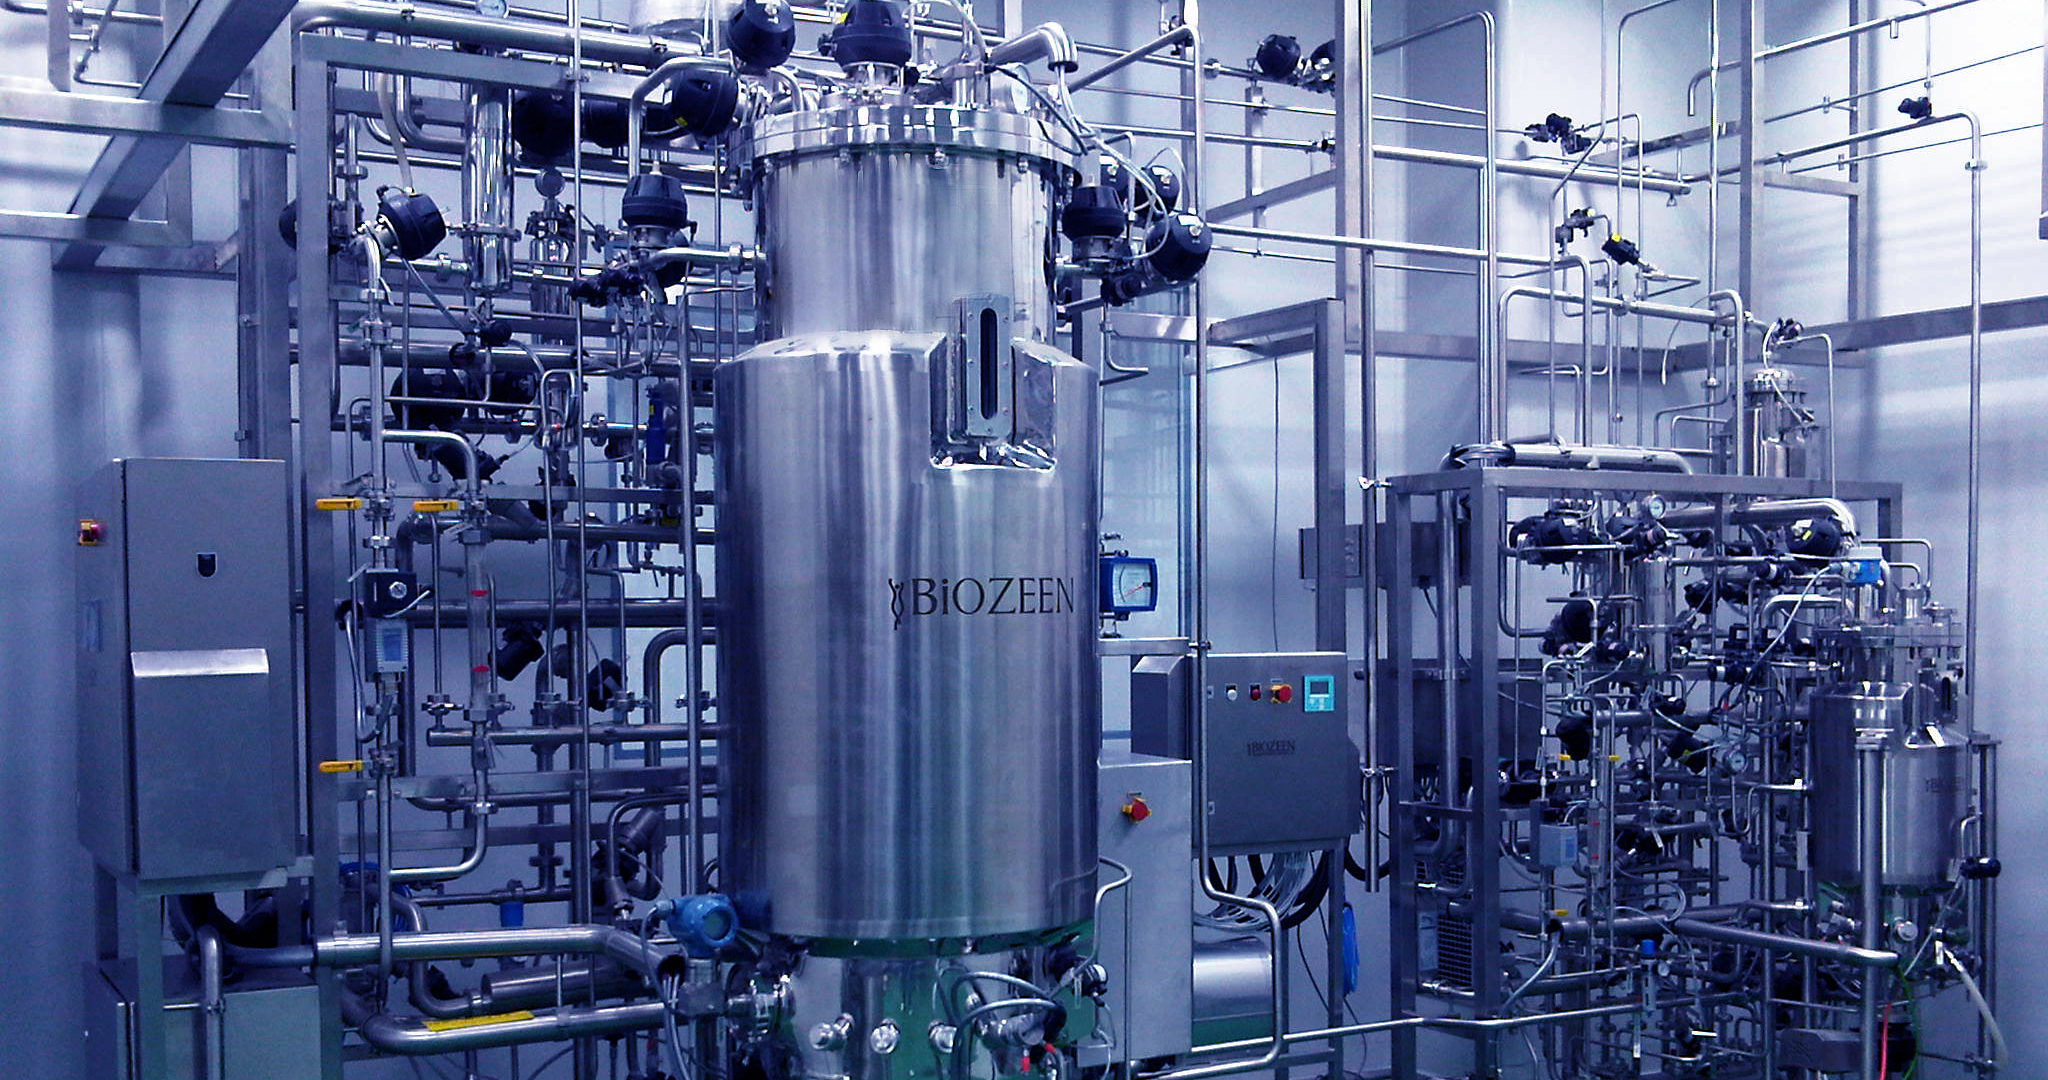 Bioreactors, Fermentors and allied Fermentation Upstream Technologies for the manufacture of Biopharmaceuticals like vaccines, mAb, enzymes etc.